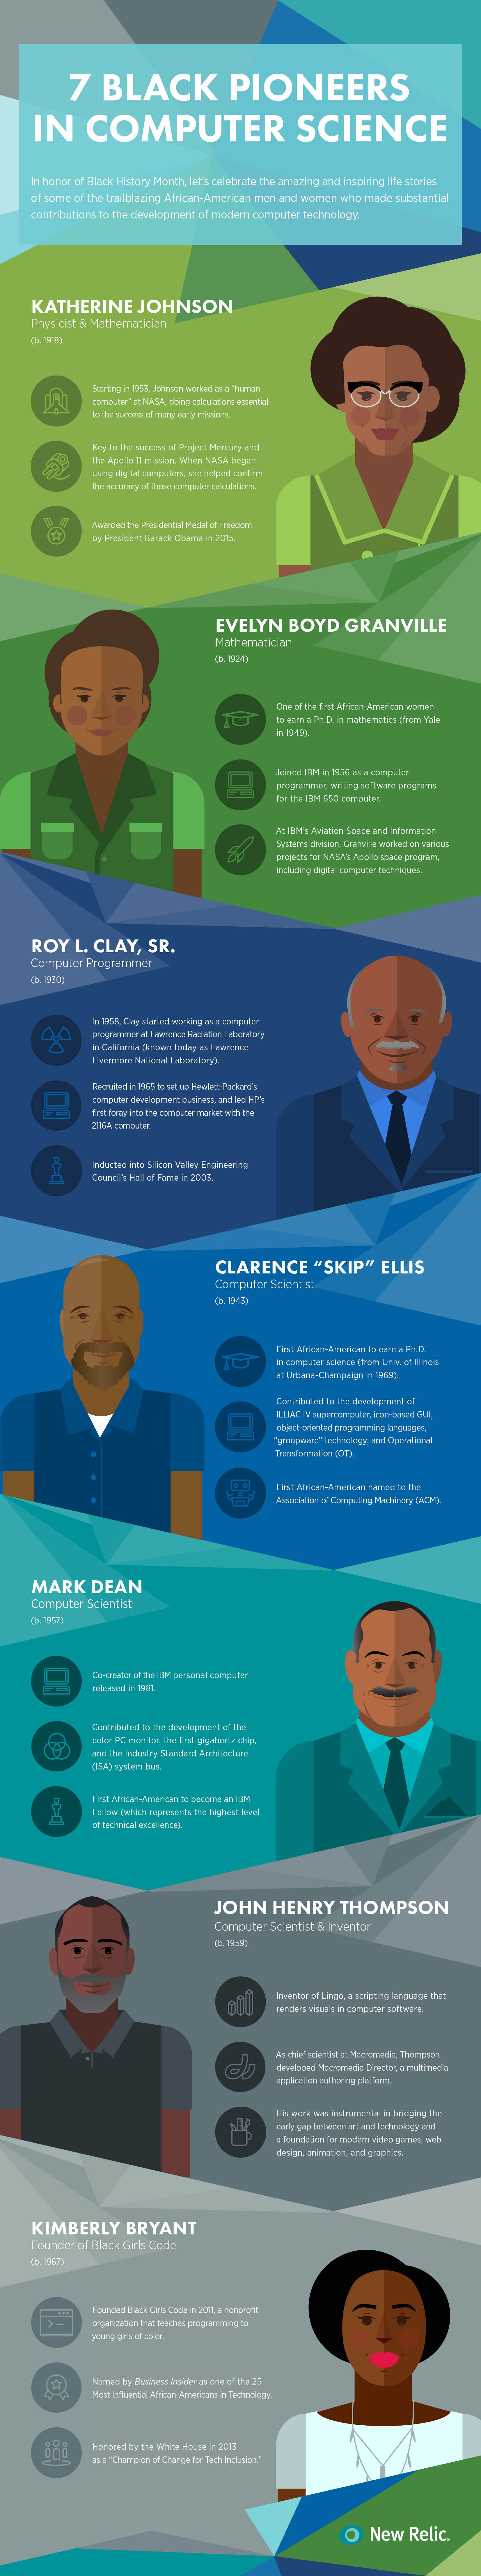 7 Black Pioneers in Computer Science